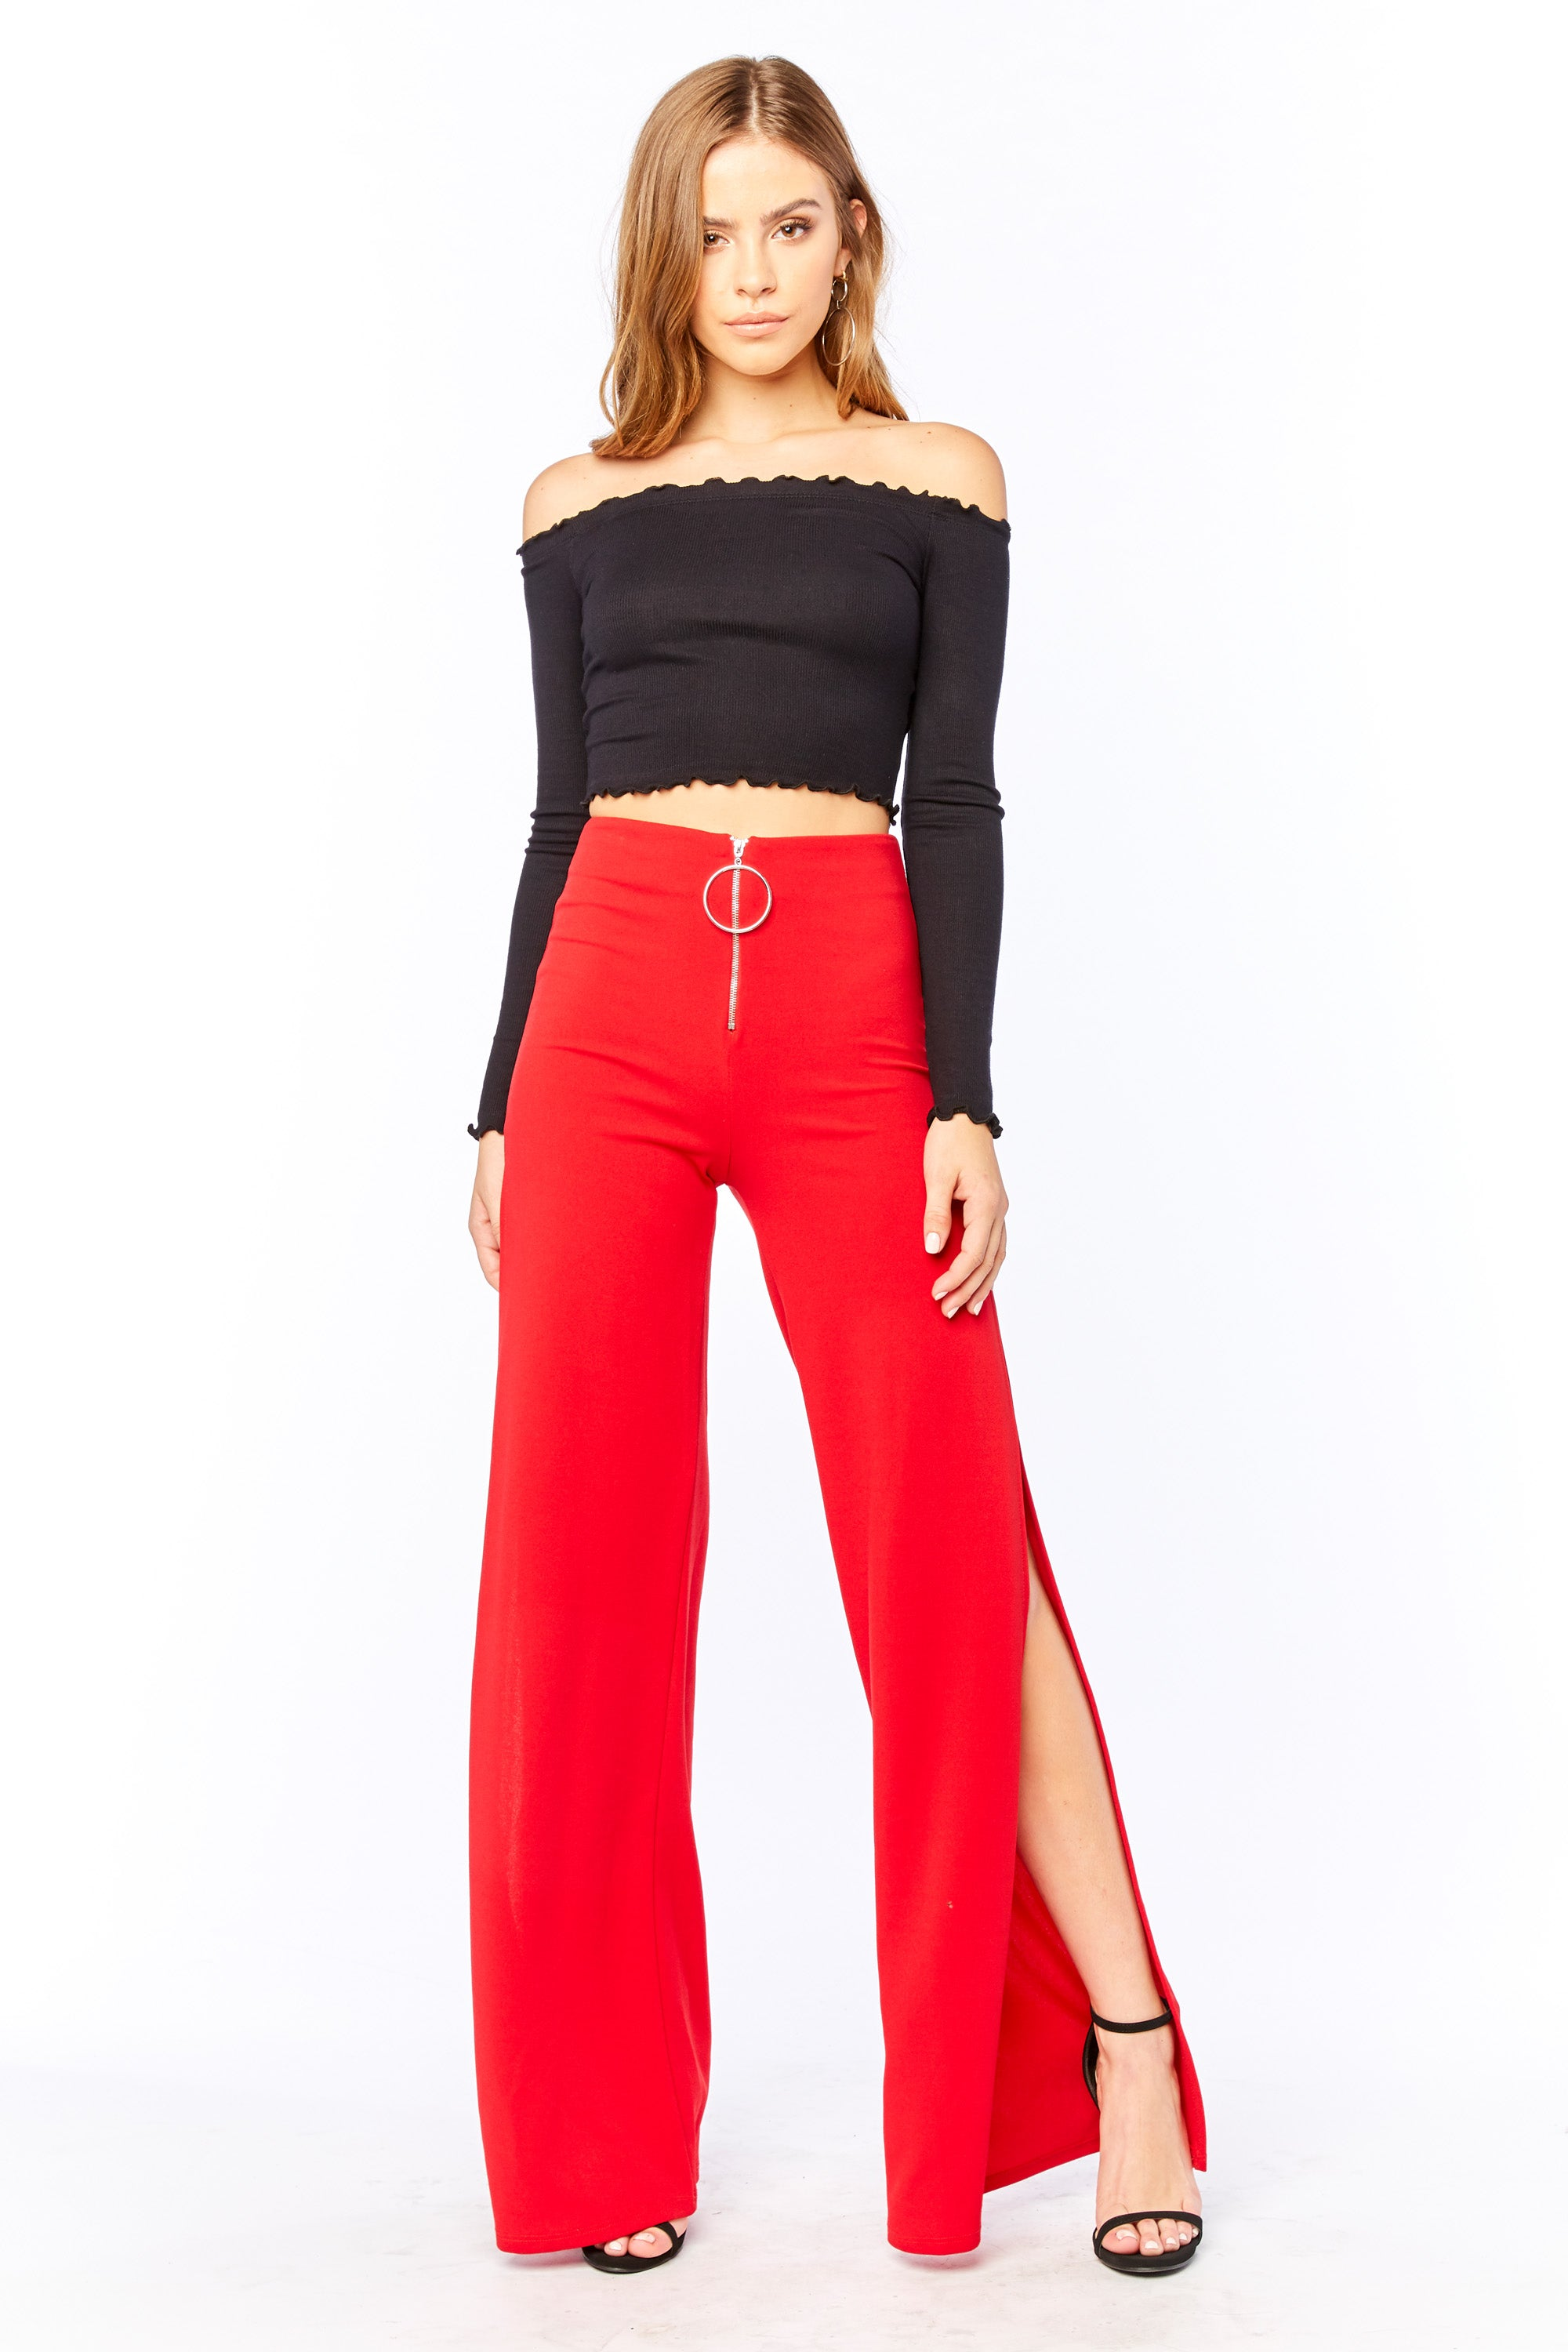 Proceed With Caution Pant - HoneyBum